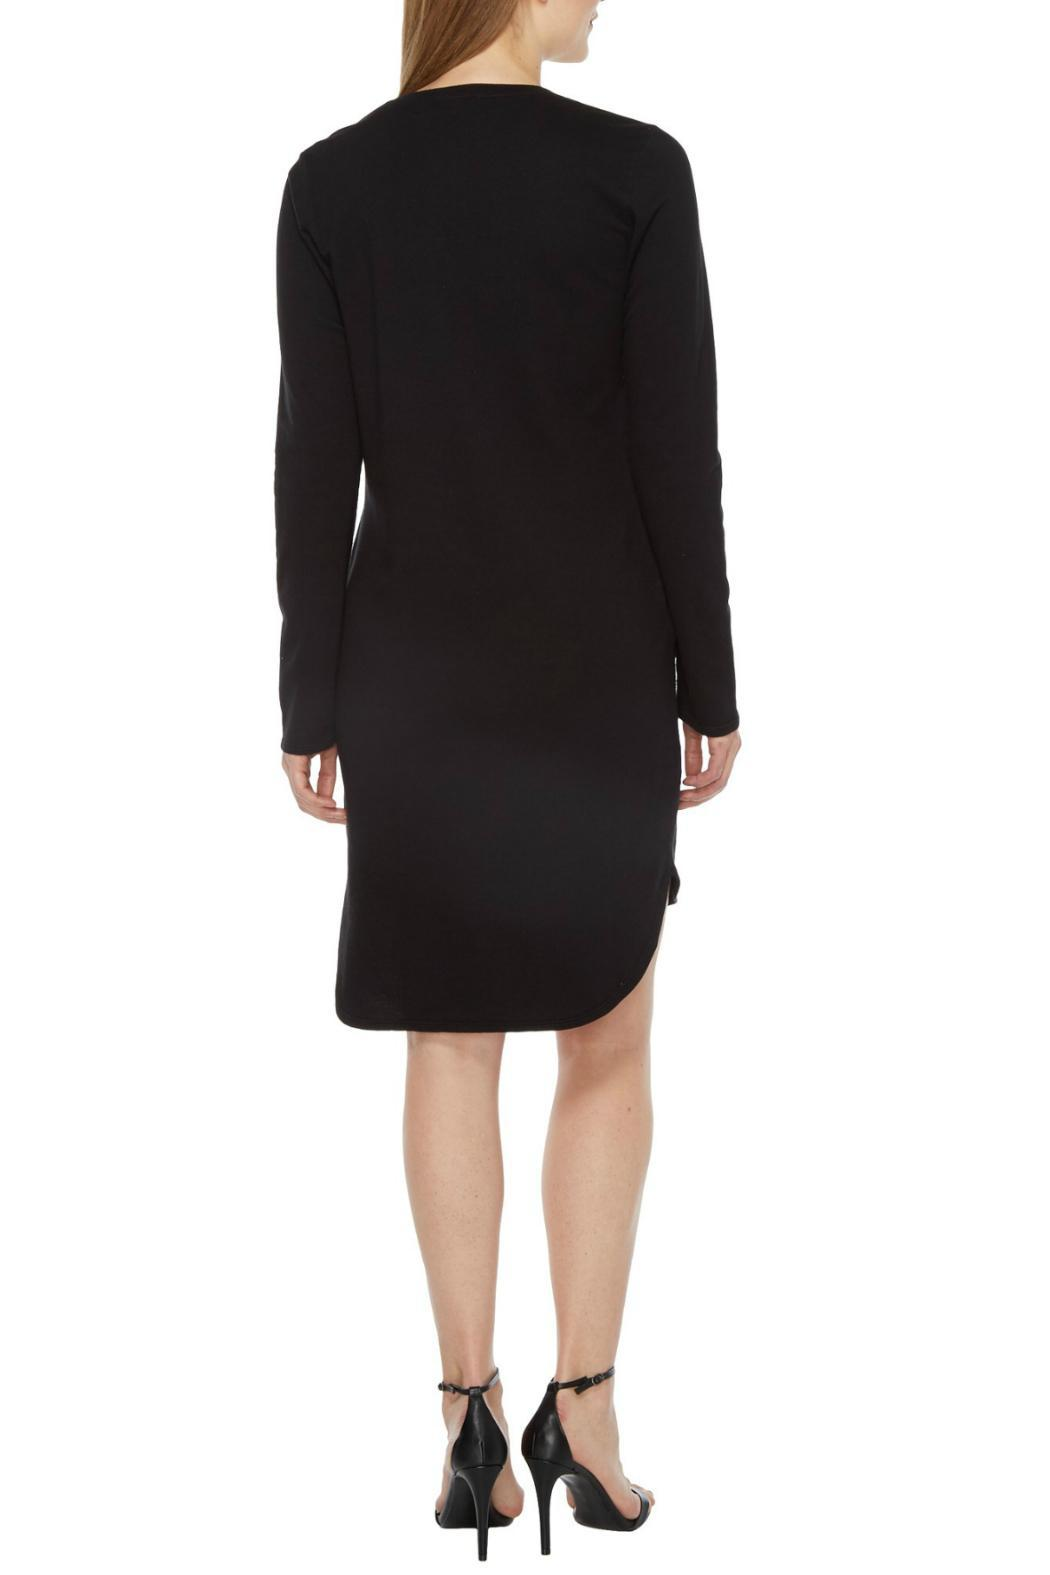 Heather French Terry Scoop Dress - Side Cropped Image